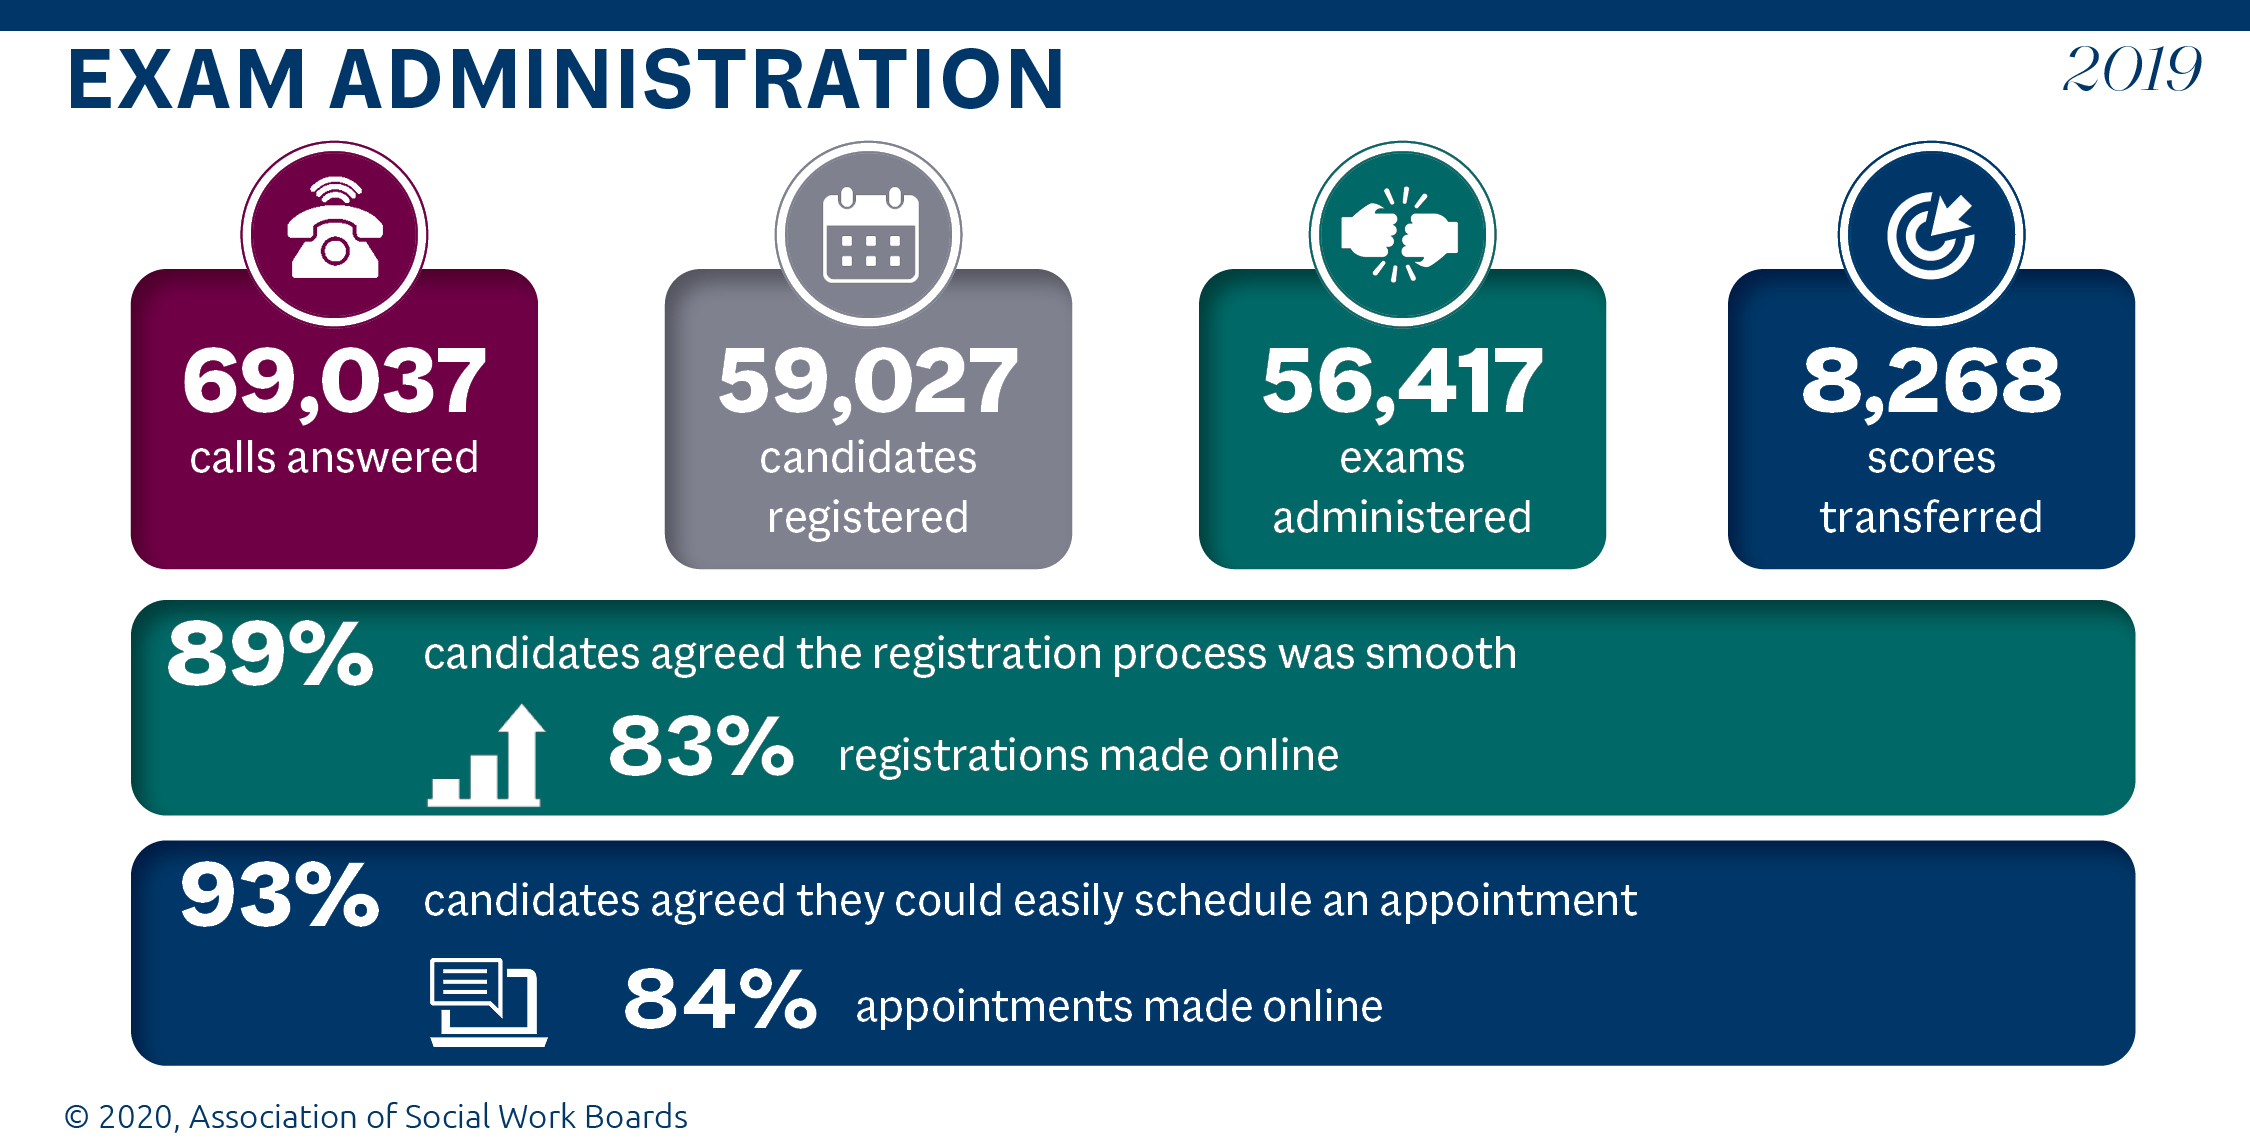 Graphic showing 69,037 calls answered; 59,027 candidates registered for the exams; 56,417 exams administered 8,268 scores transferred; 89% of candidates agreed that the registration process was smooth; 83% registered online; 93% of candidates agreed they could easily schedule an appointment; 84% of appointments were made online.